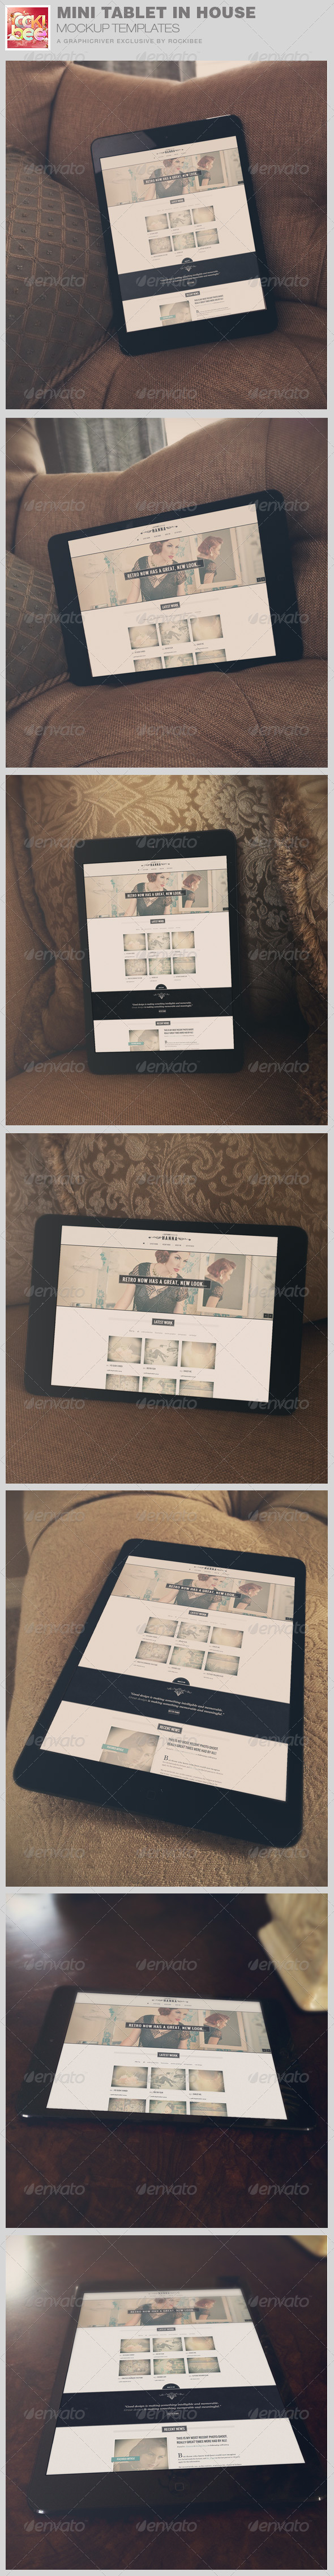 GraphicRiver Mini Tablet in House Mockup Template 8232785